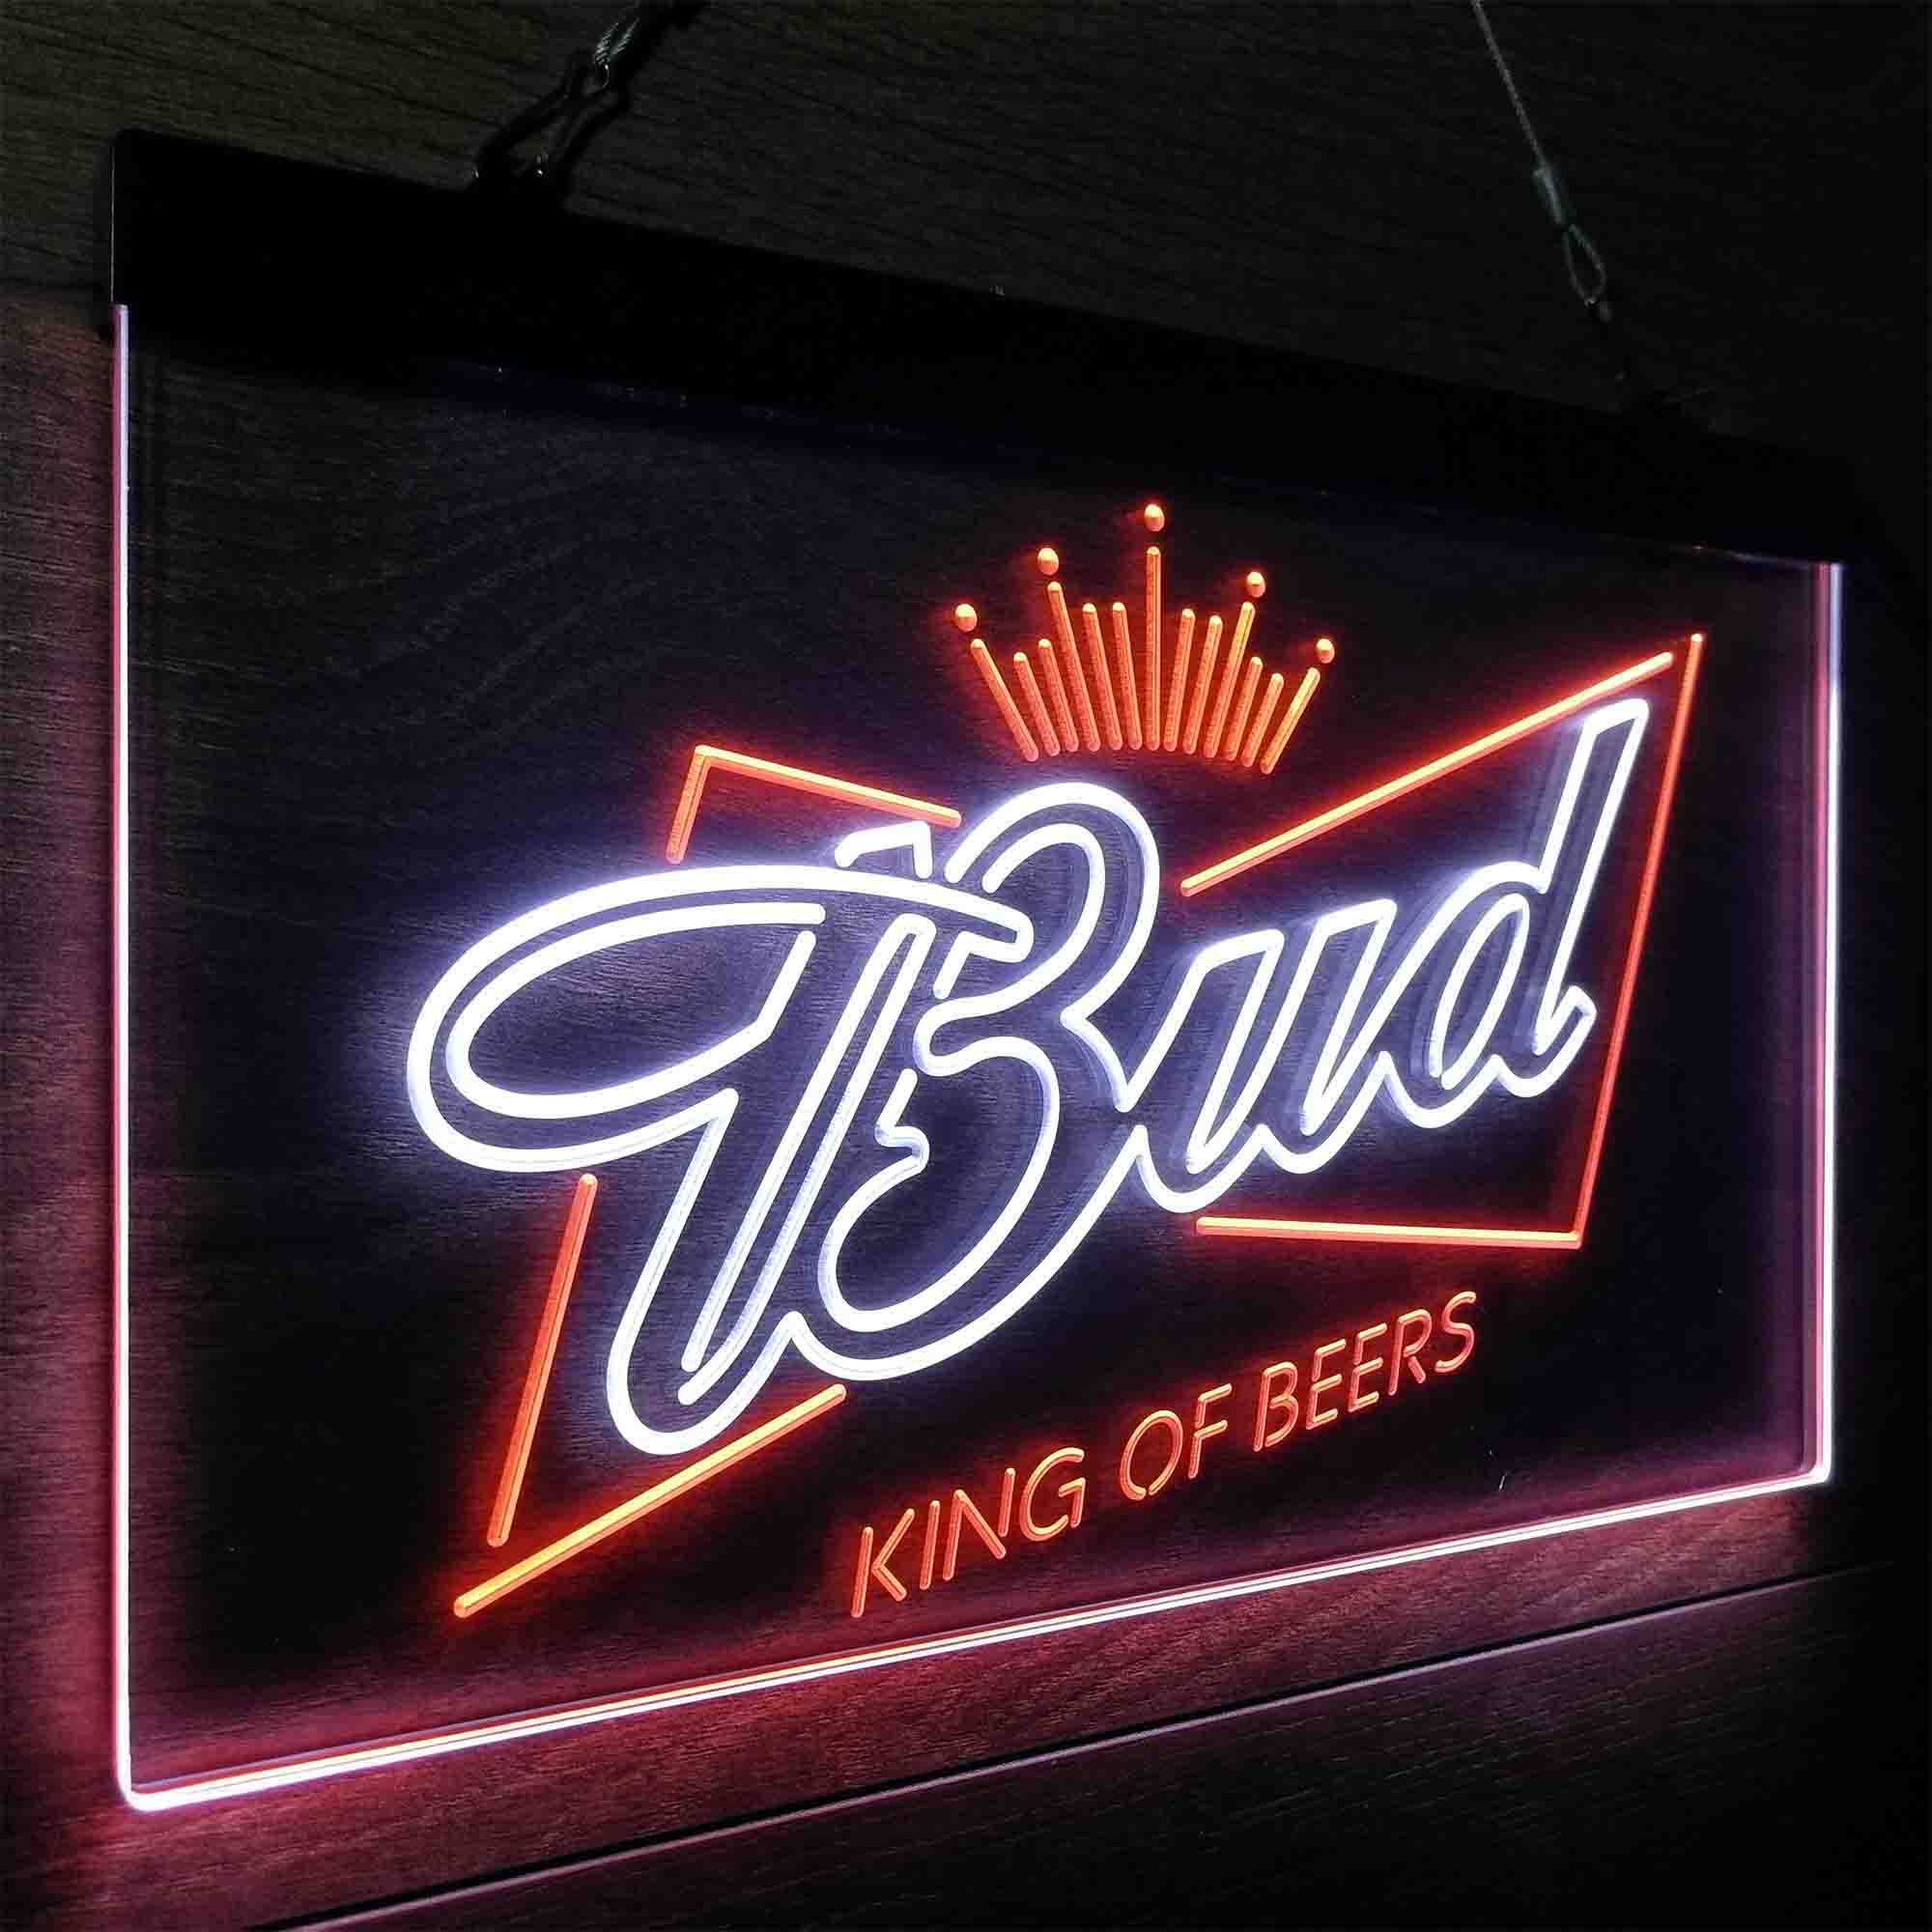 Bud King of Beer Crown Neon-Like LED Sign